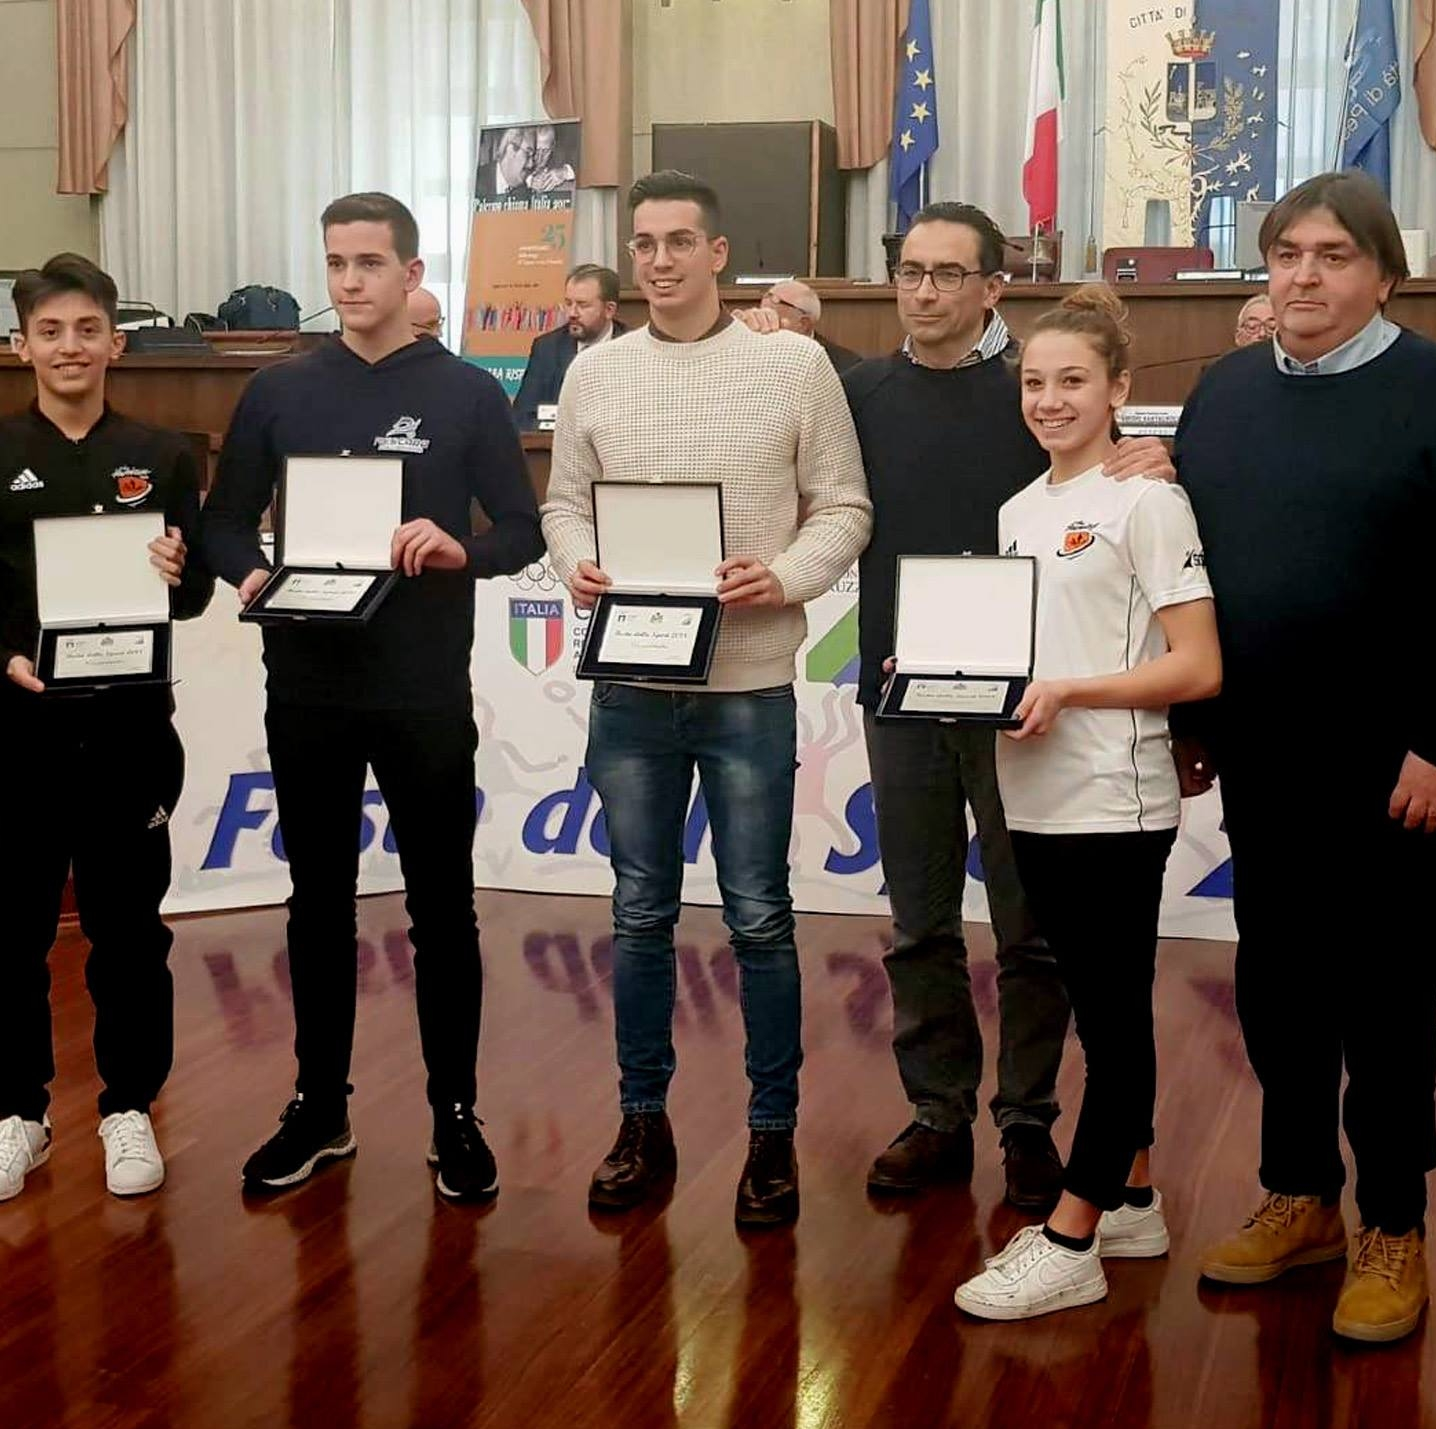 II team The Hurricane premiato al Gran Galà dello Sport